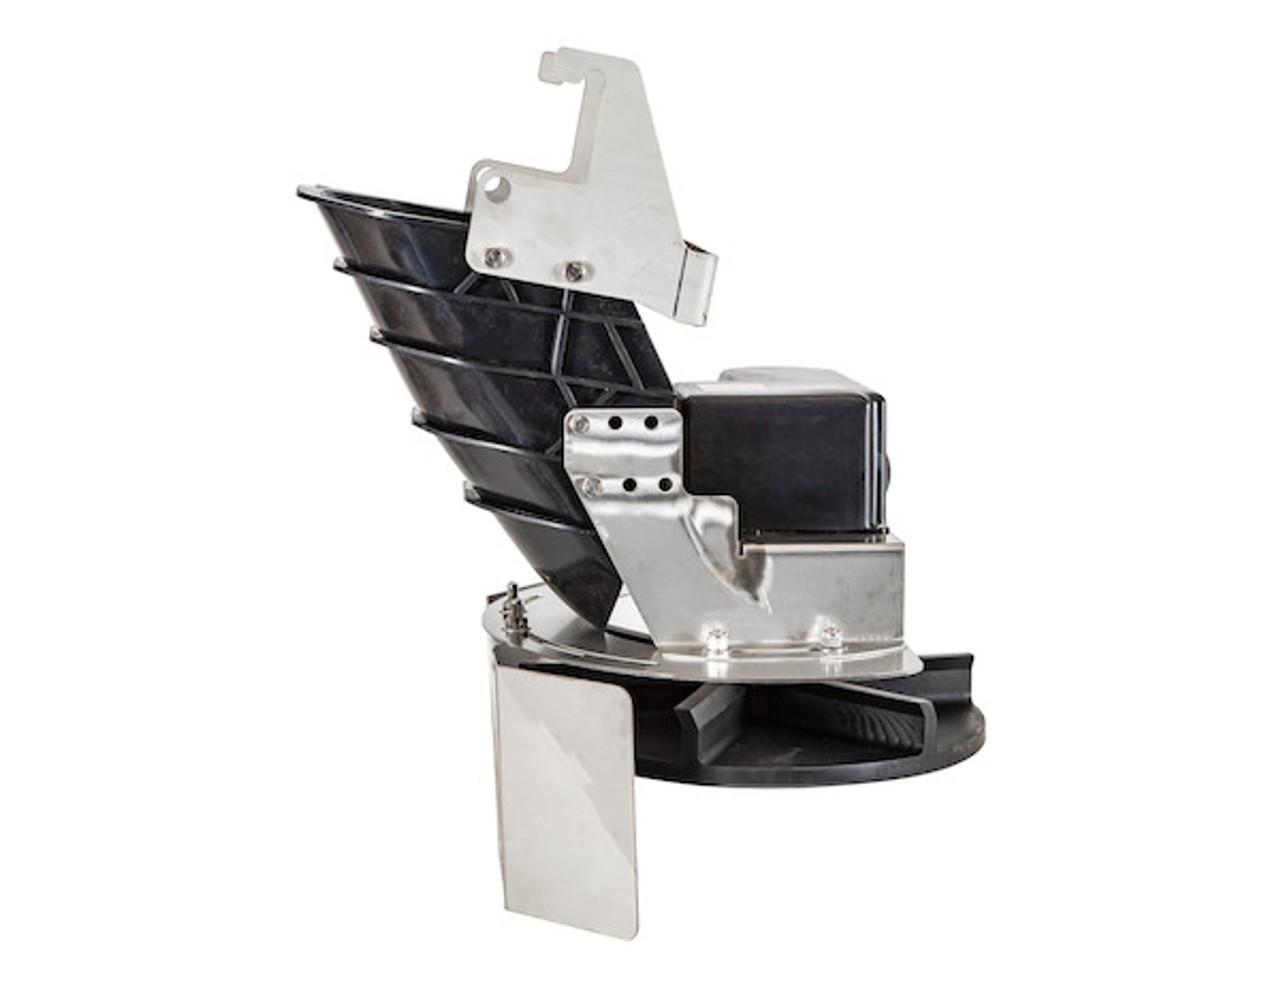 BUYERS 3025070 Standard Length Chute Assembly For SaltDogg SHPE Series Spreaders 6